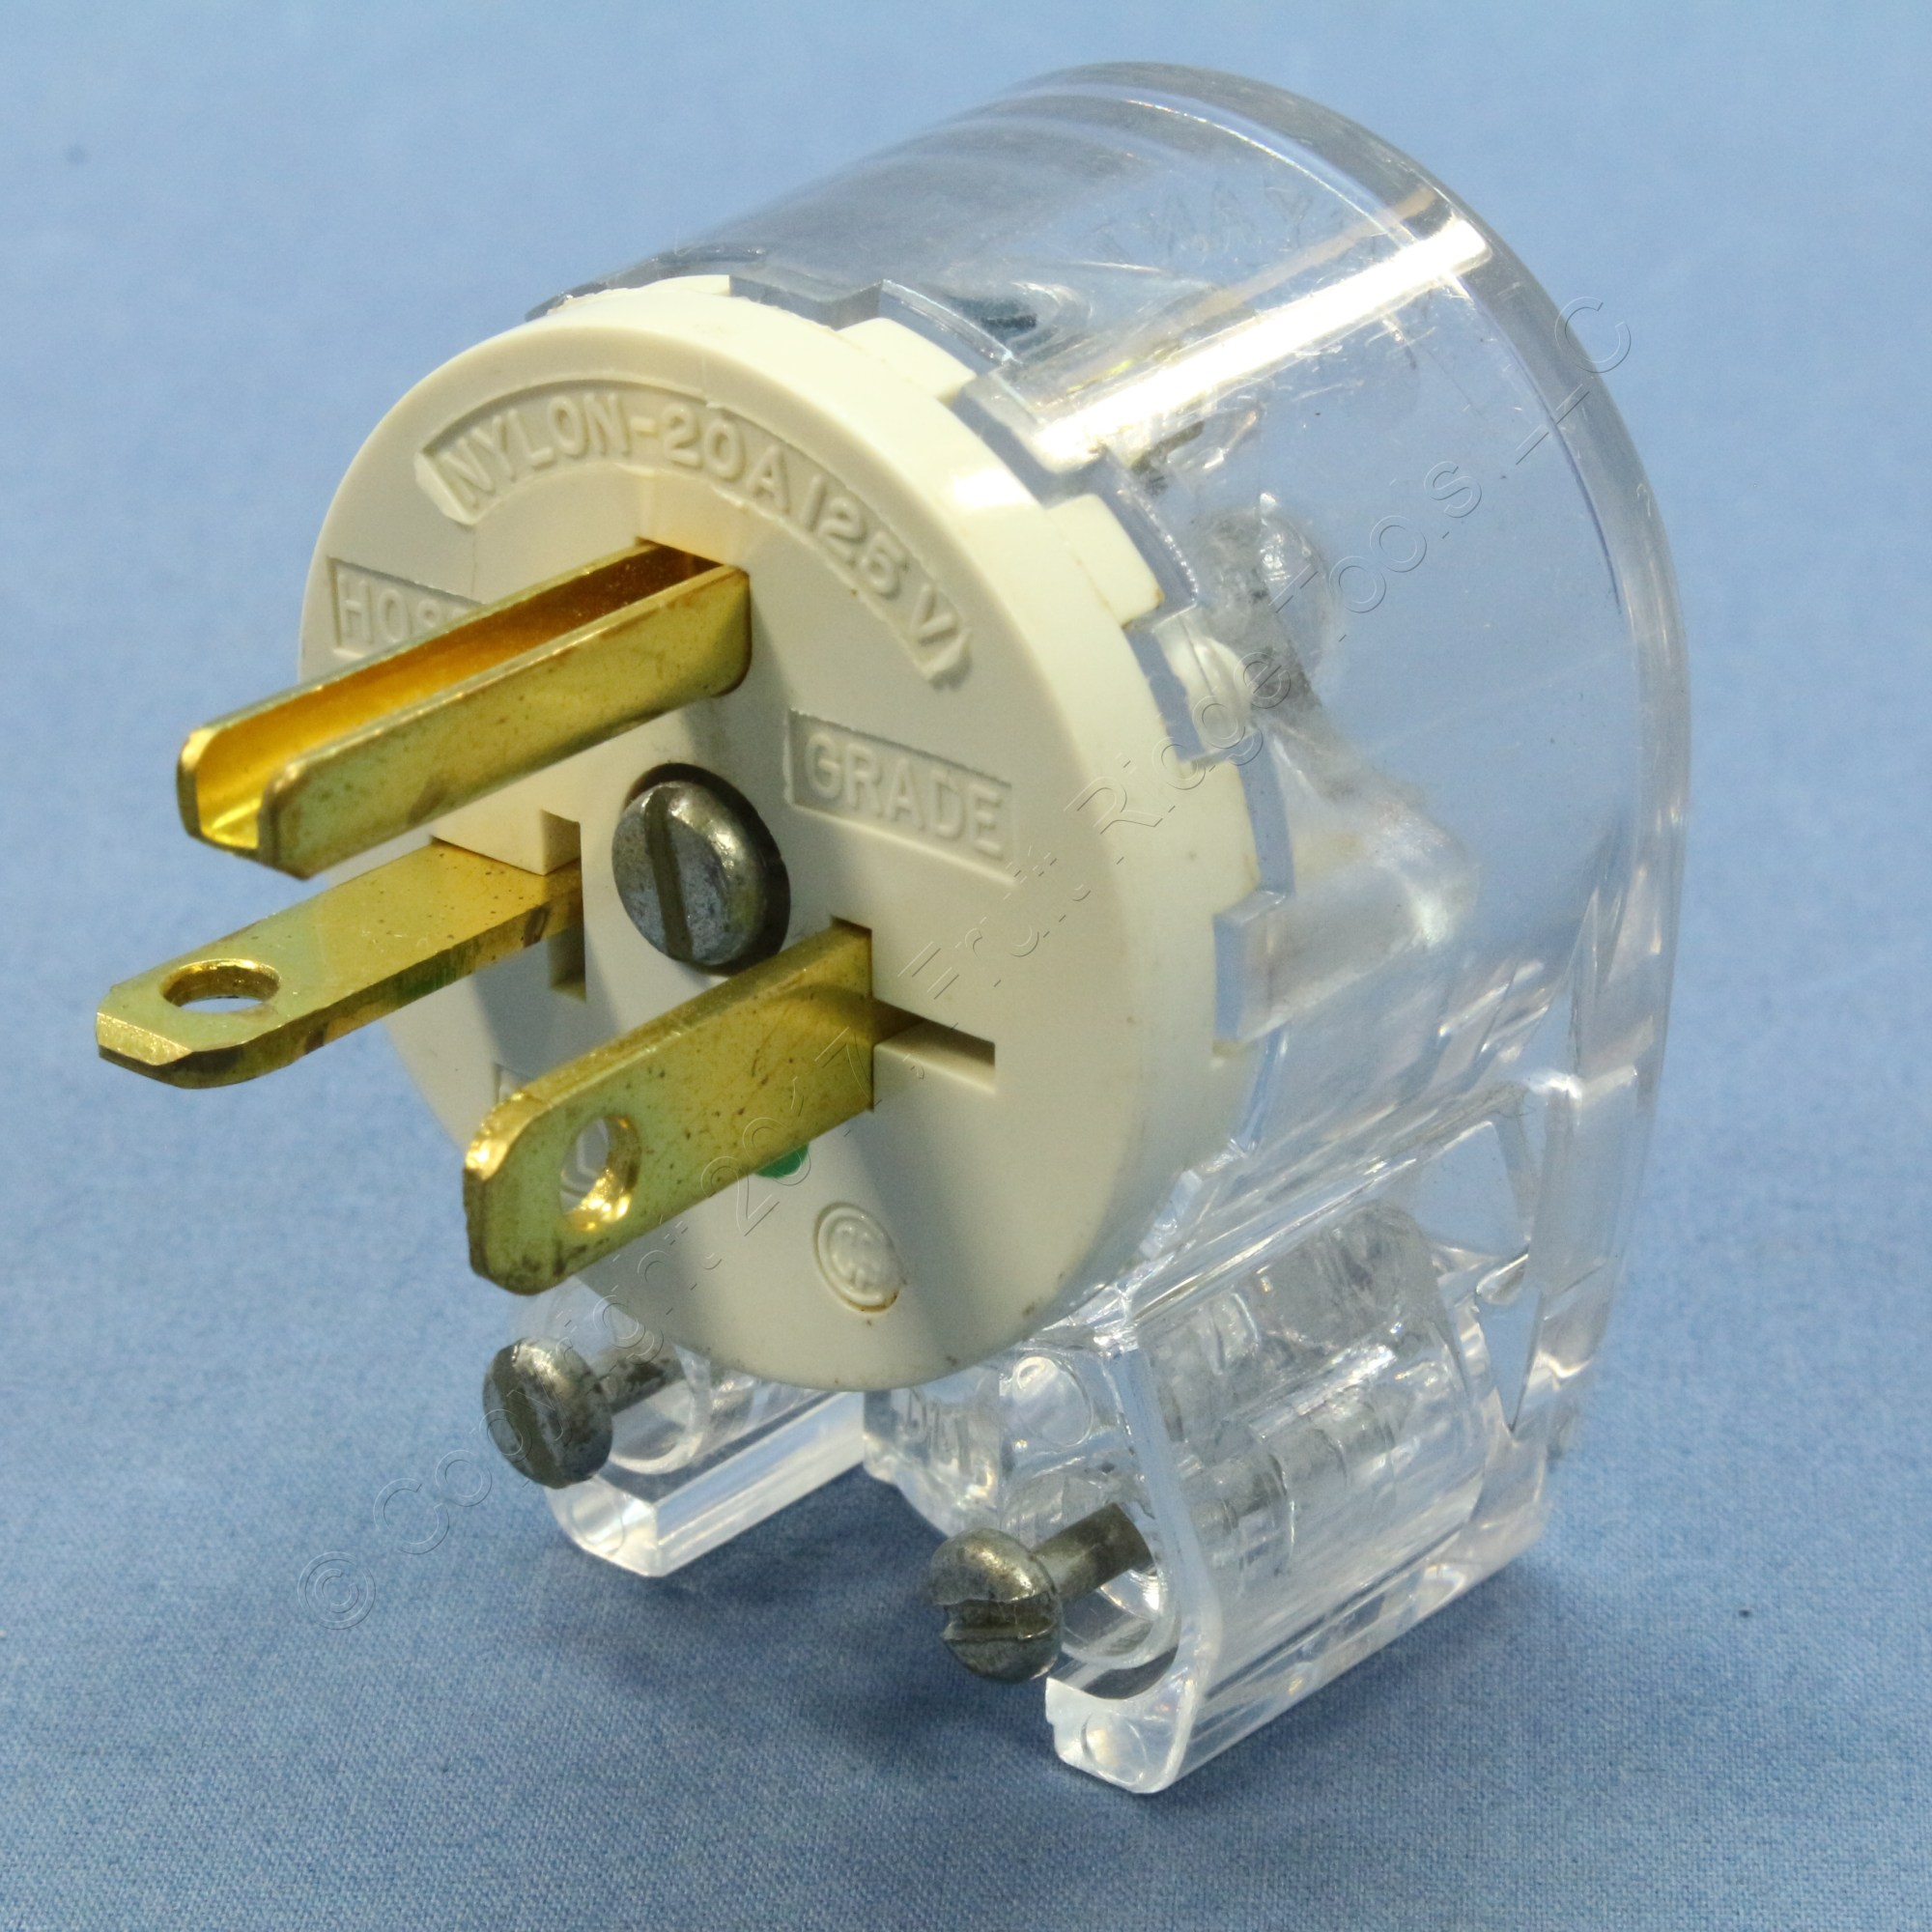 hight resolution of bryant clear straight blade angle connector plug 12 position 5 20p cooper wiring angle extension cord replacement plug ebay